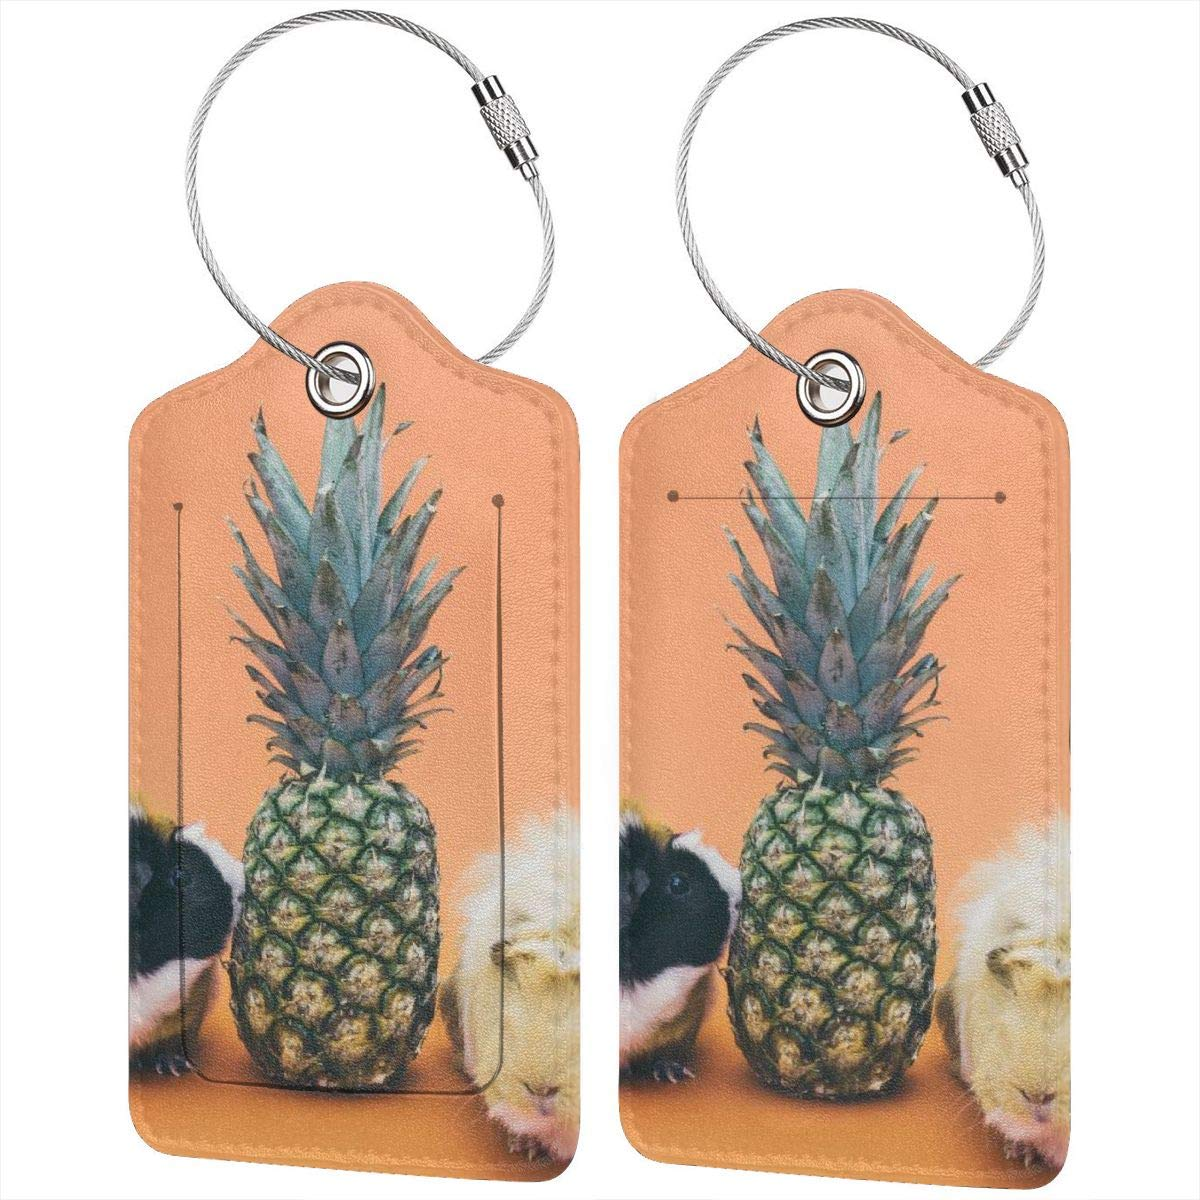 Pineapple Guinea Pig Travel Luggage Tags With Full Privacy Cover Leather Case And Stainless Steel Loop